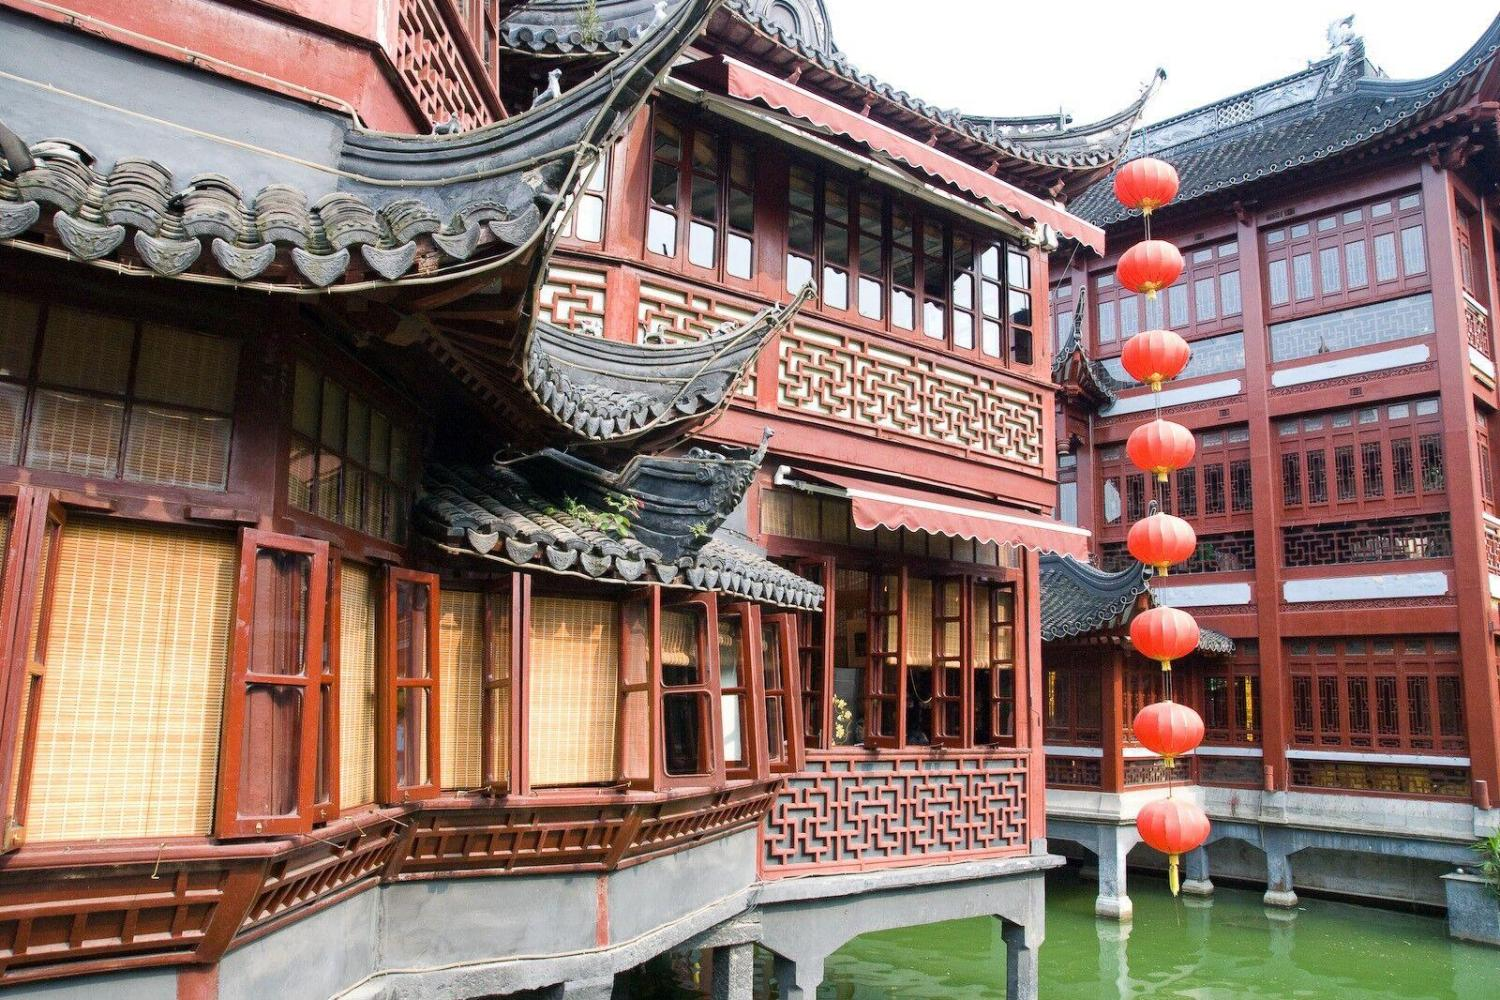 Shanghai Half Day Tour: Yu Yuan Gardens and Bund Waterway (Private)